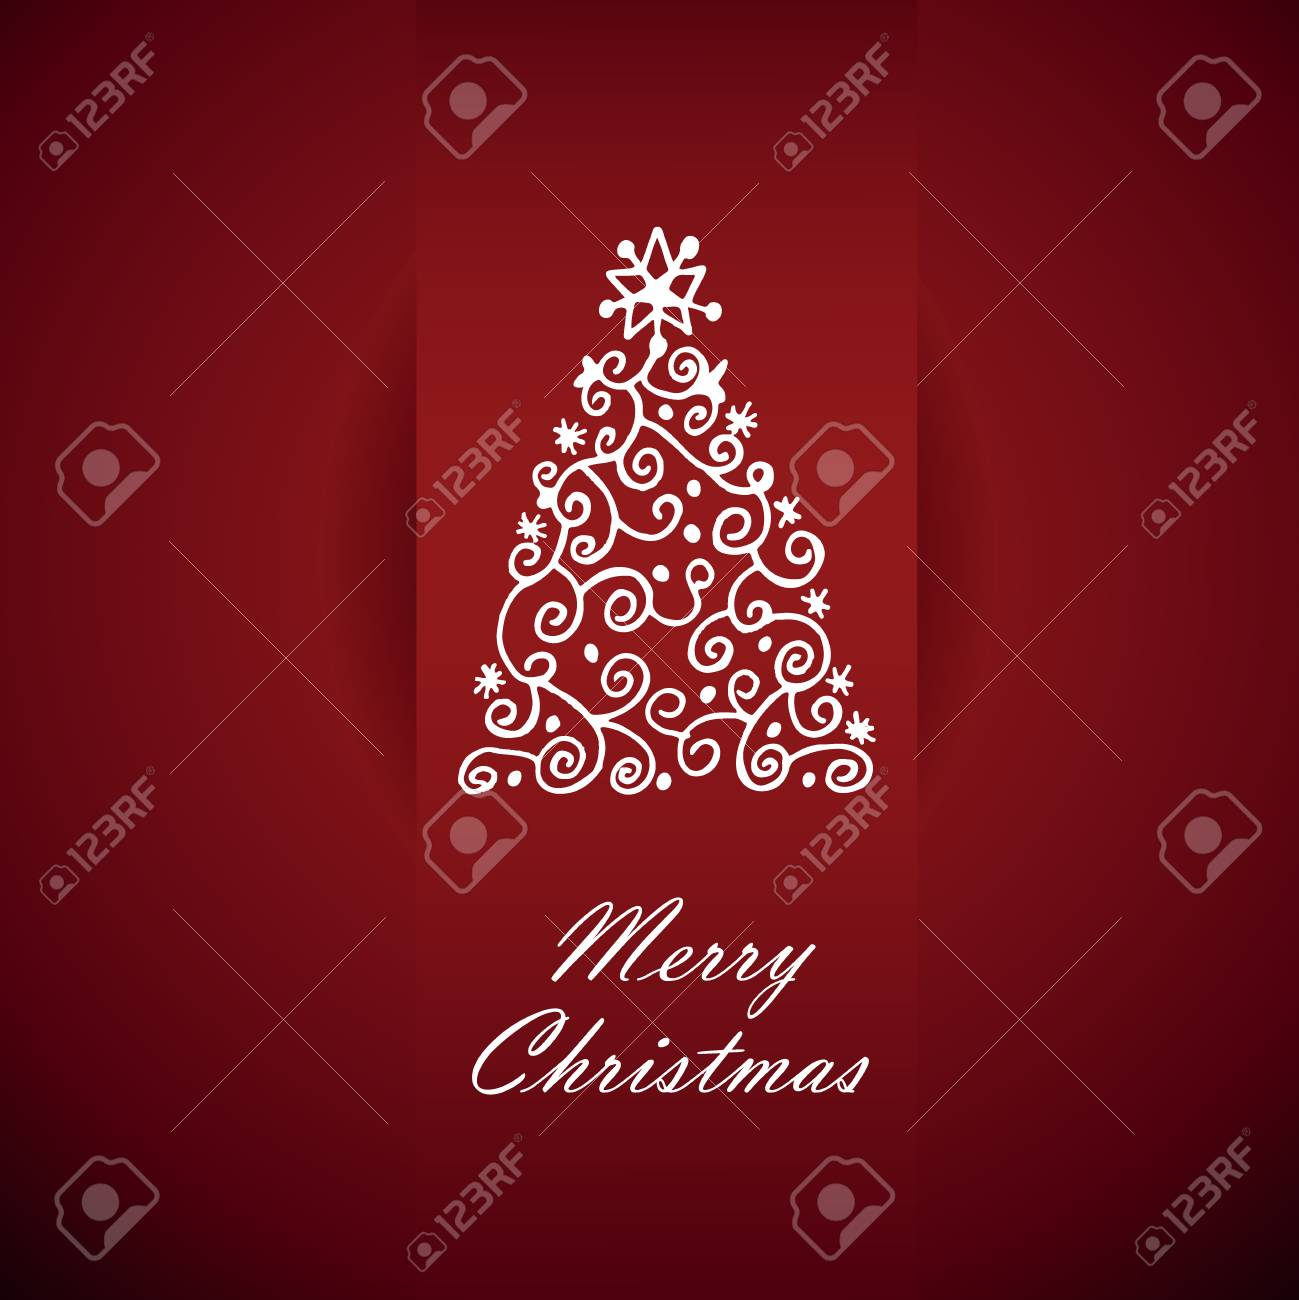 Card With Christmas Greetings Vector Illustration Royalty Free